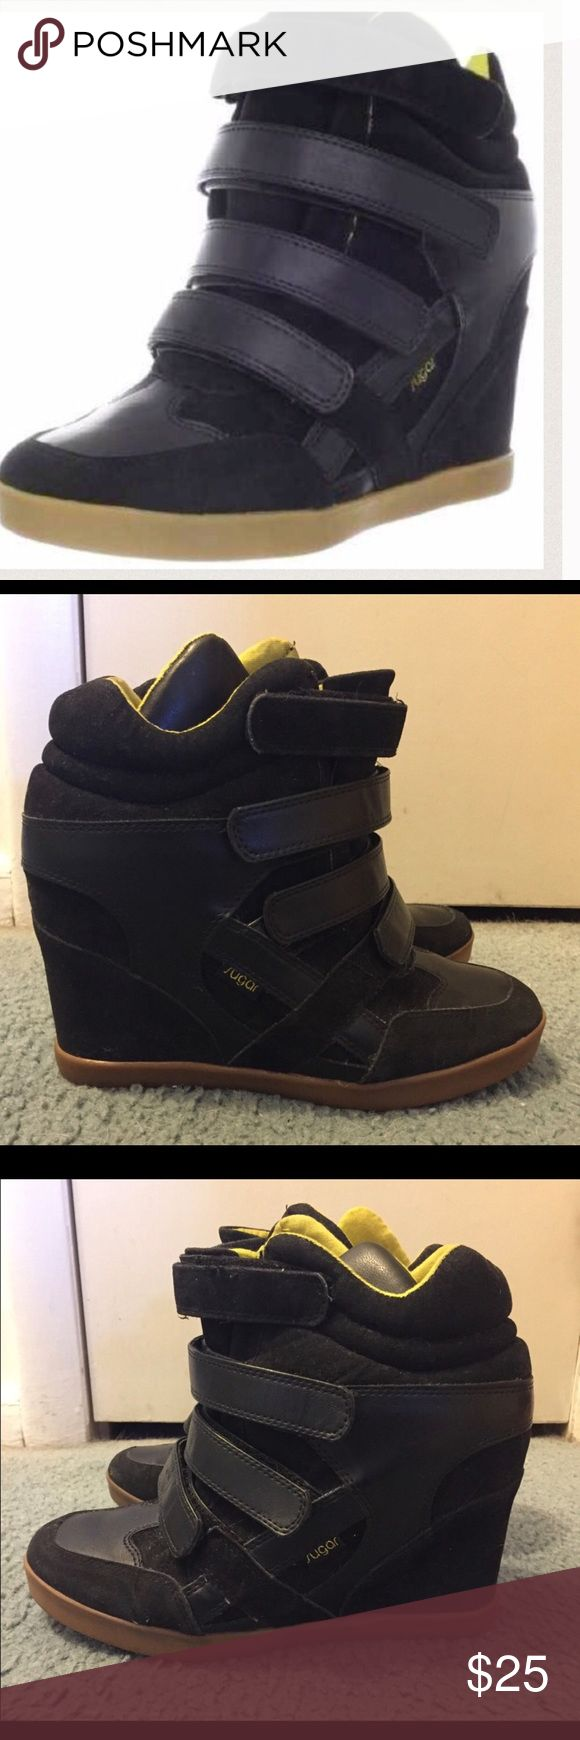 BLACK HIGH TOP WEDGE SNEAKERS FASHION TENNIS SHOES Only worn a few times...great condition!!  Size 10 sugar Shoes Sneakers